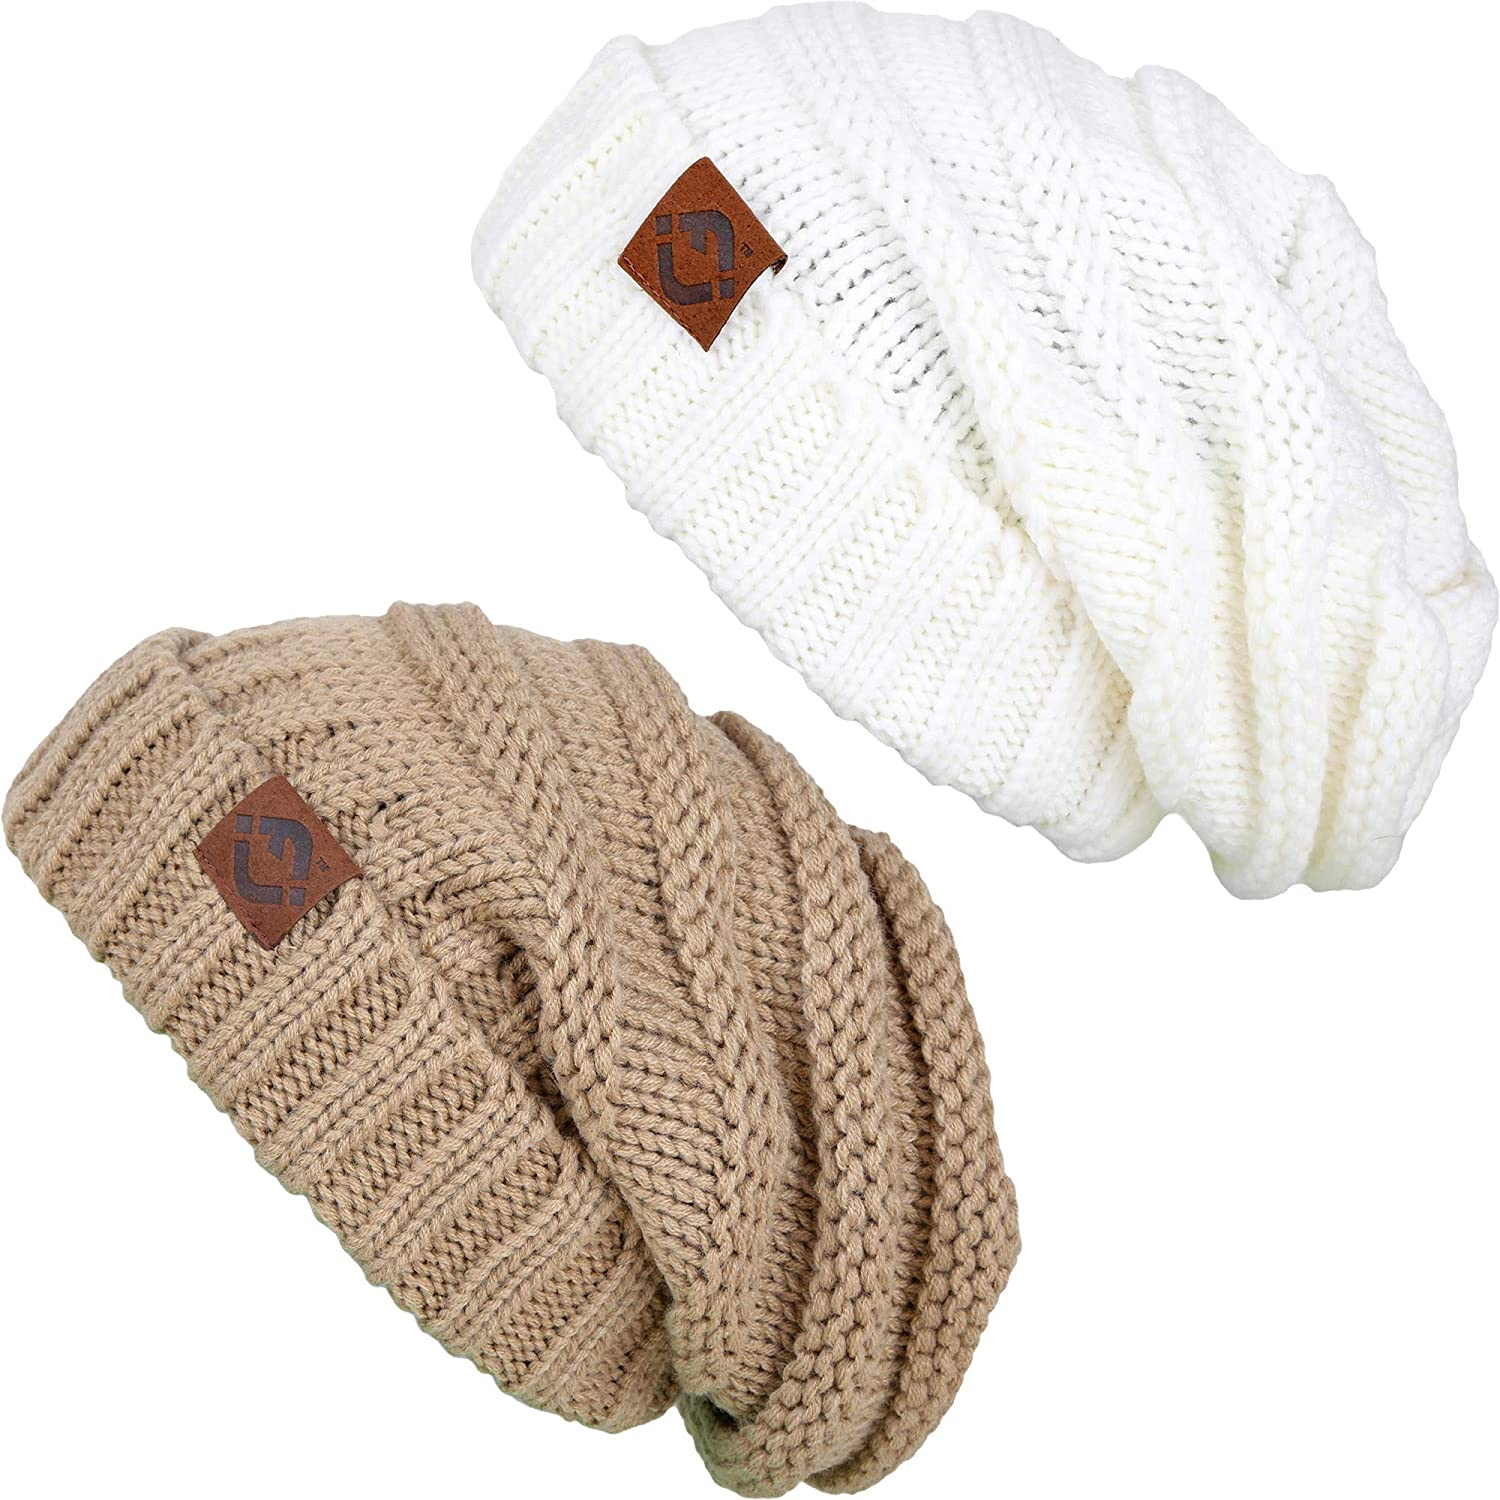 4b0d70cdc2f Funky Junque F2-2-1325 FJ Oversized Beanie Bundle - Camel   Ivory (2 Pack)  at Amazon Women s Clothing store